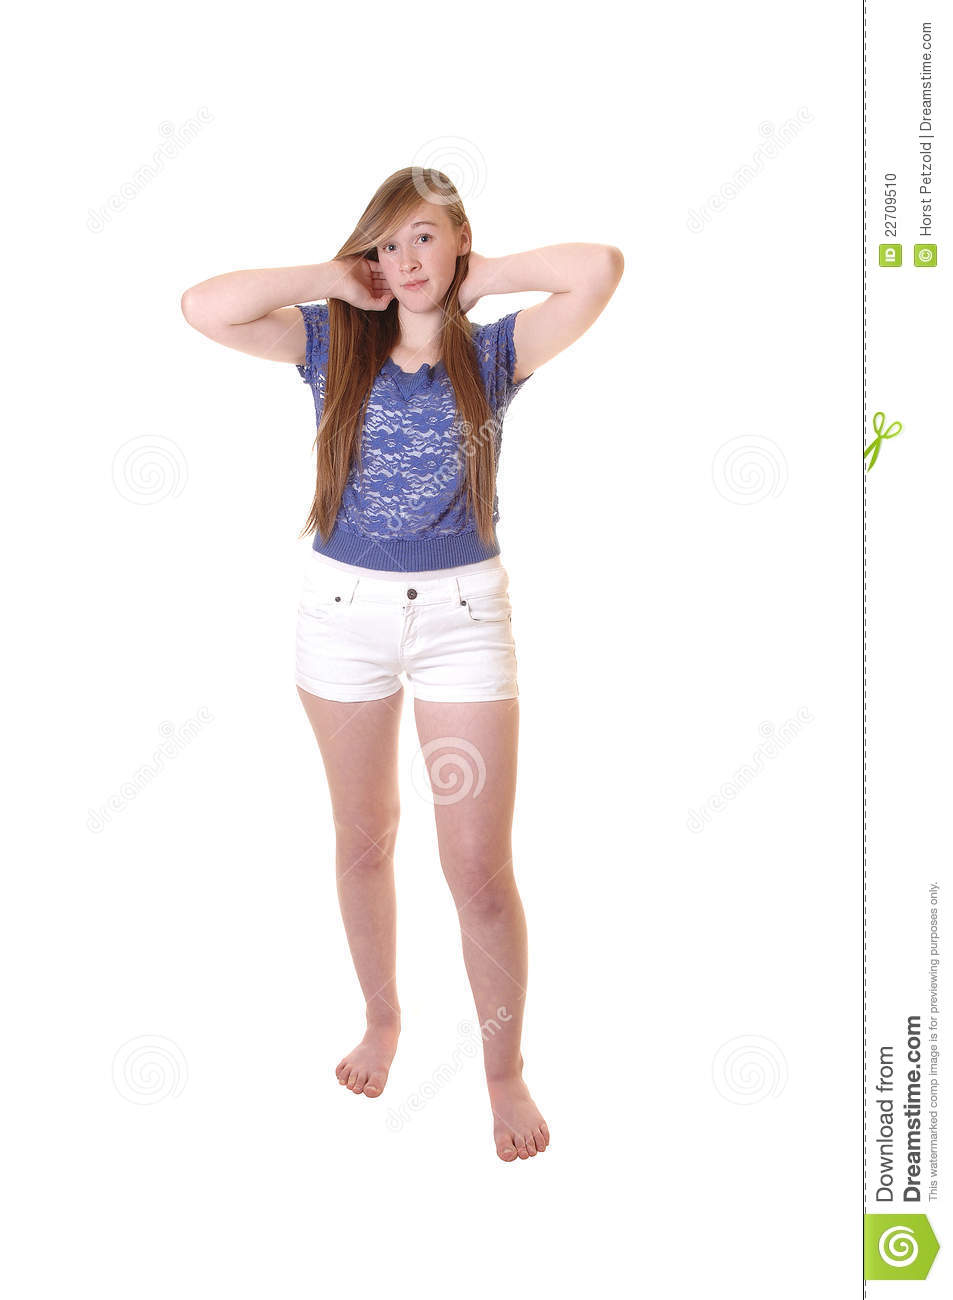 Young girl in shorts.